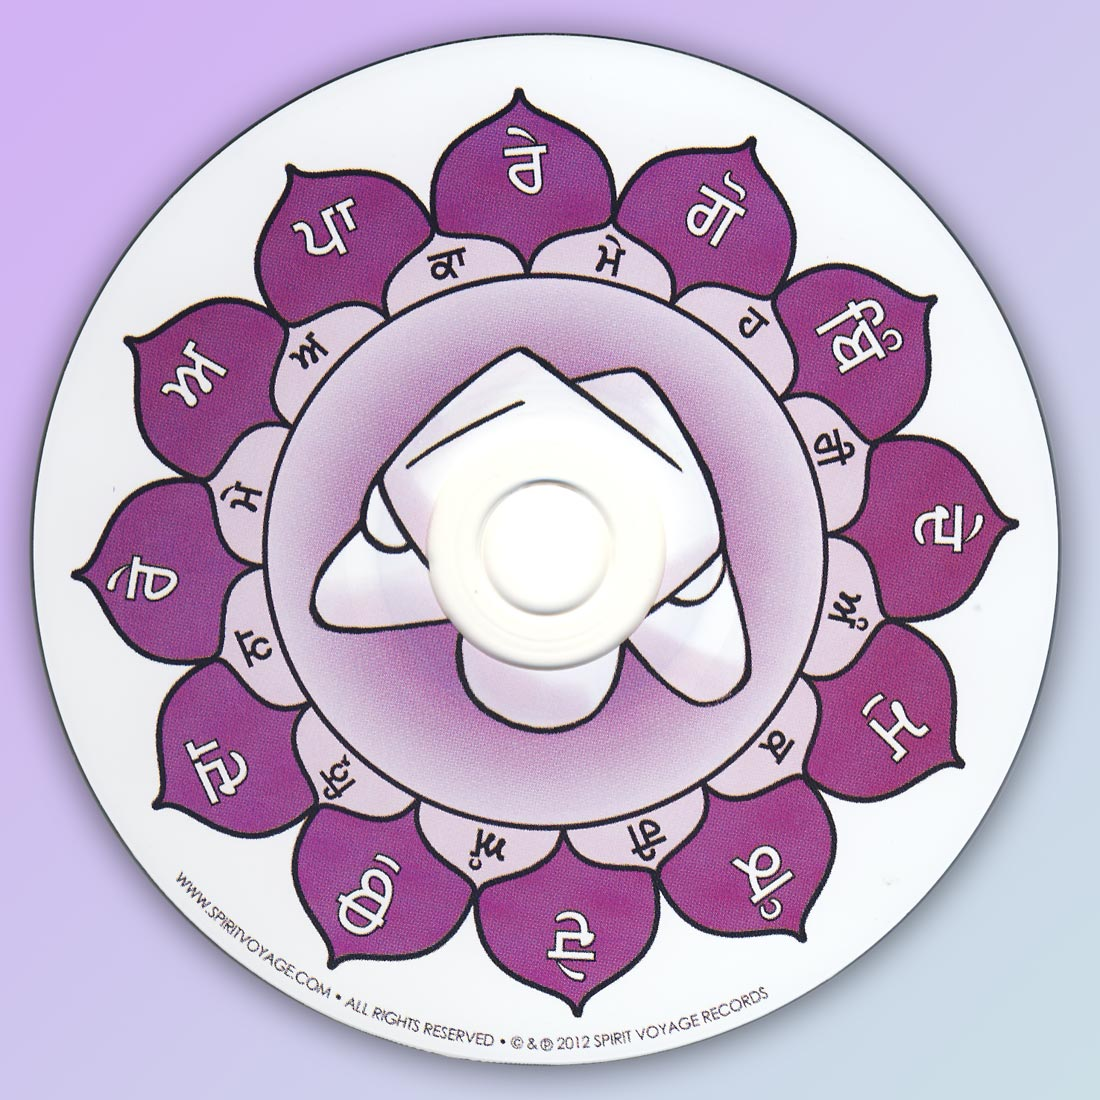 Bound Lotus - Re Man Eh Bidh Jog - Snatam Kaur CD